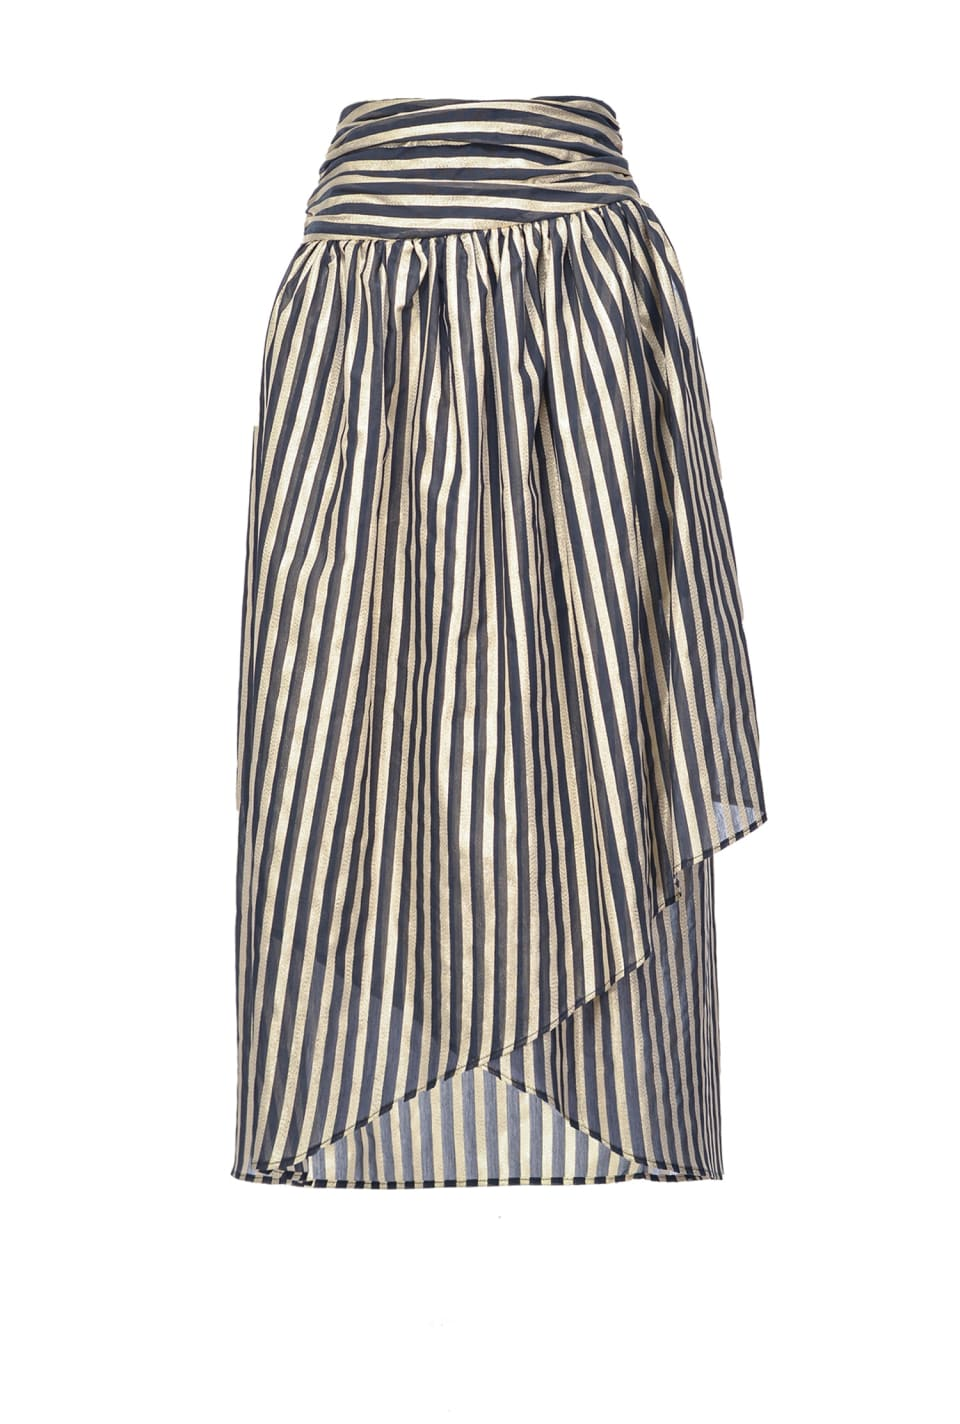 Lurex striped skirt - Pinko